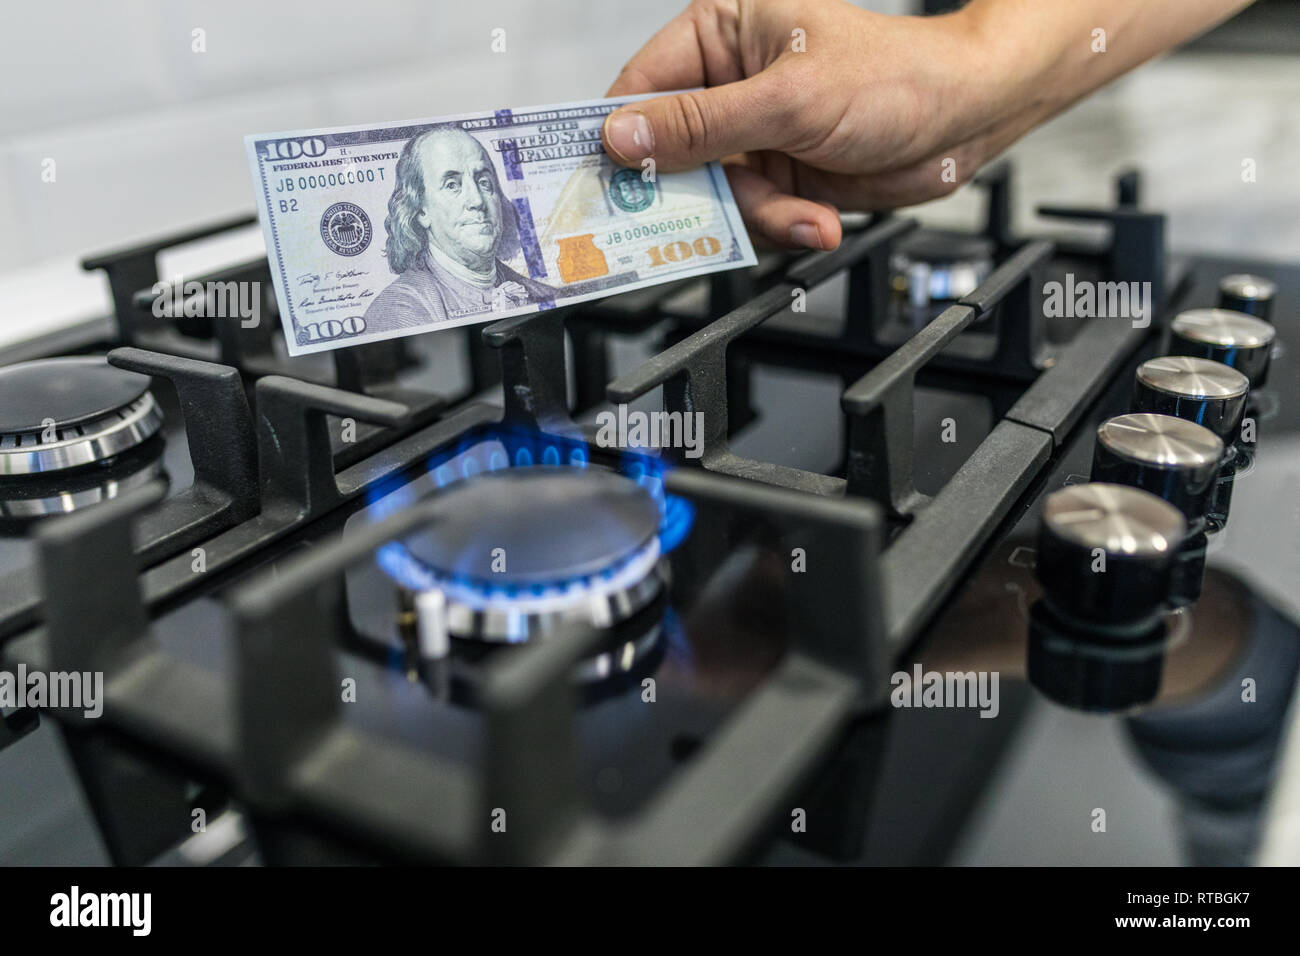 Cooktop with burning gas ring with hands holding money 100 dollars for combustion - Stock Image